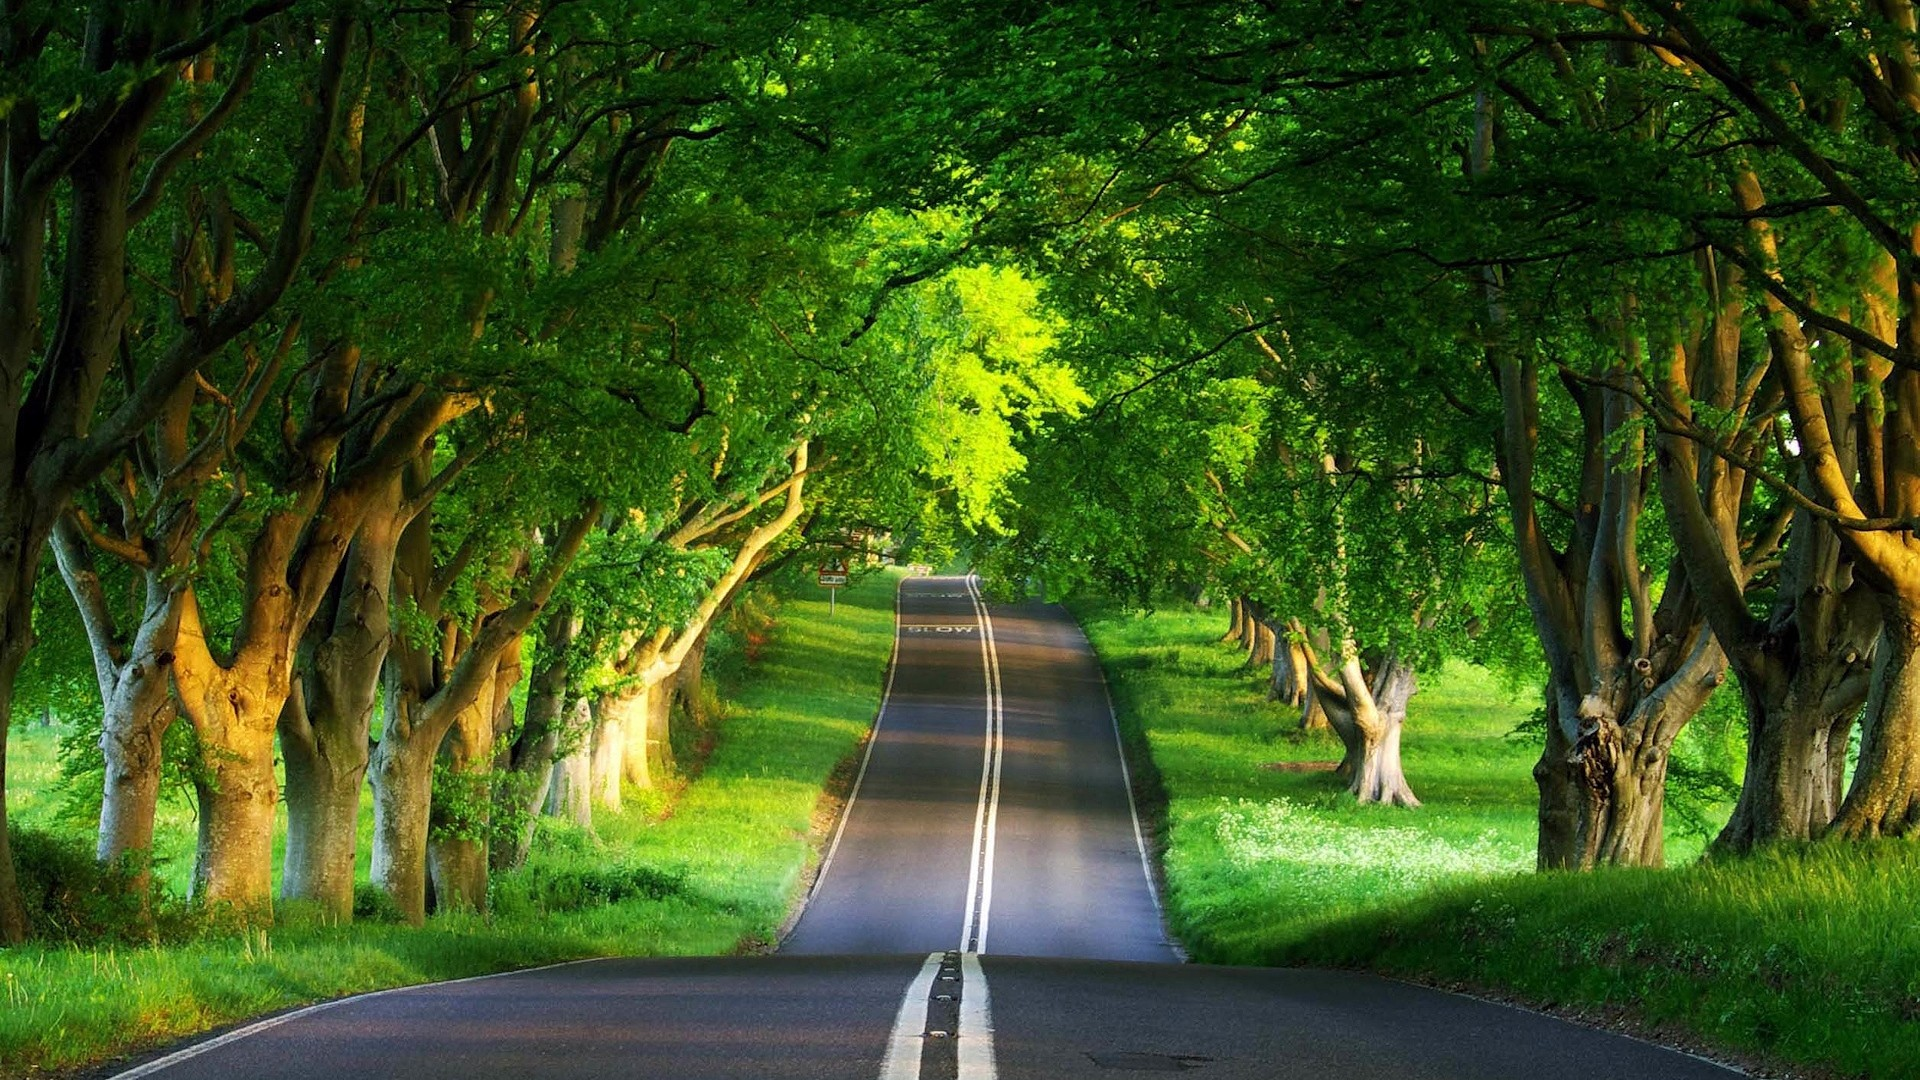 Green Trees on Countryside Road Wallpaper